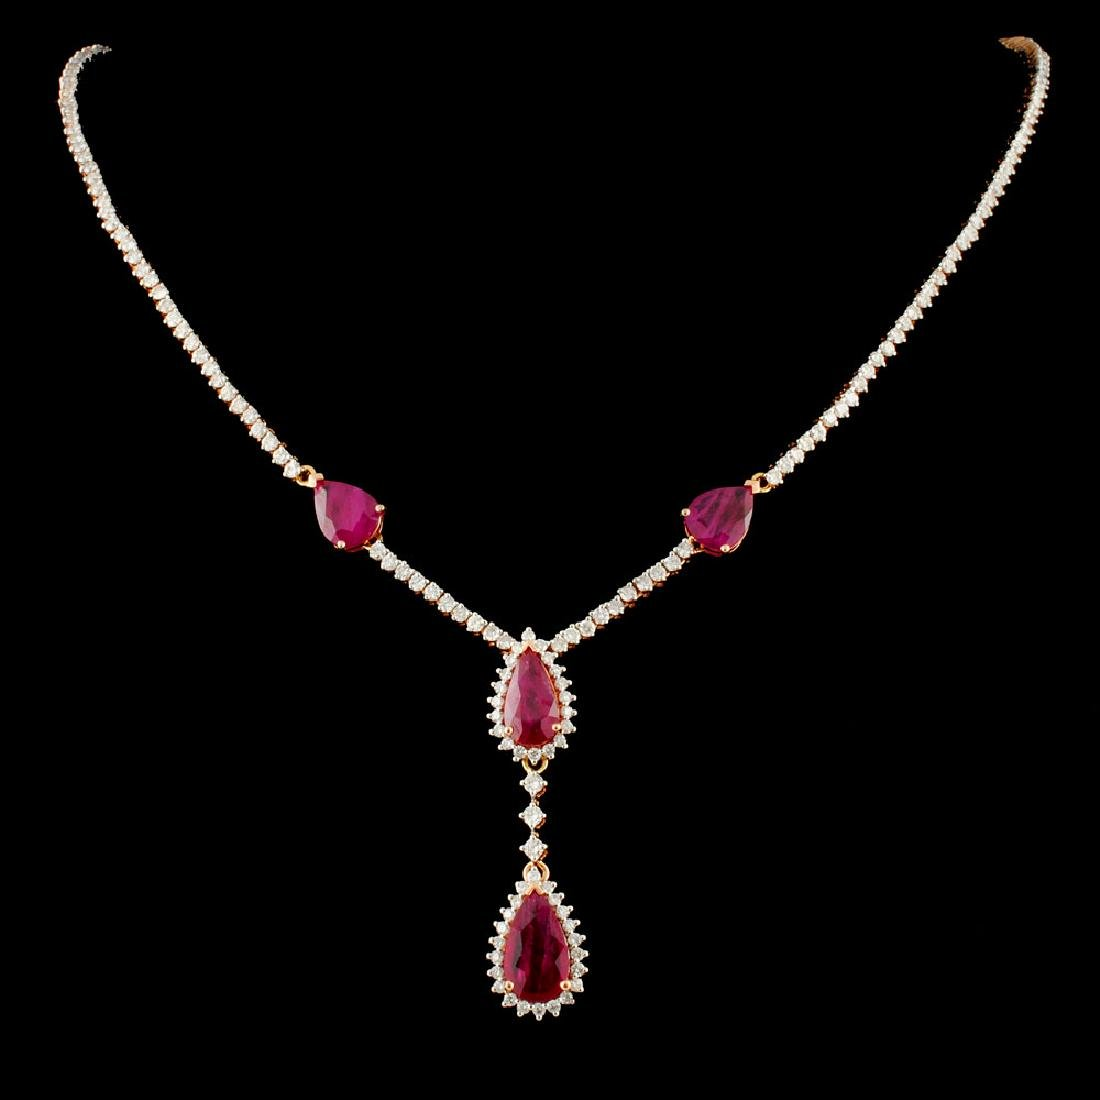 14K Gold 6.93ct Ruby & 3.54ctw Diamond Necklace